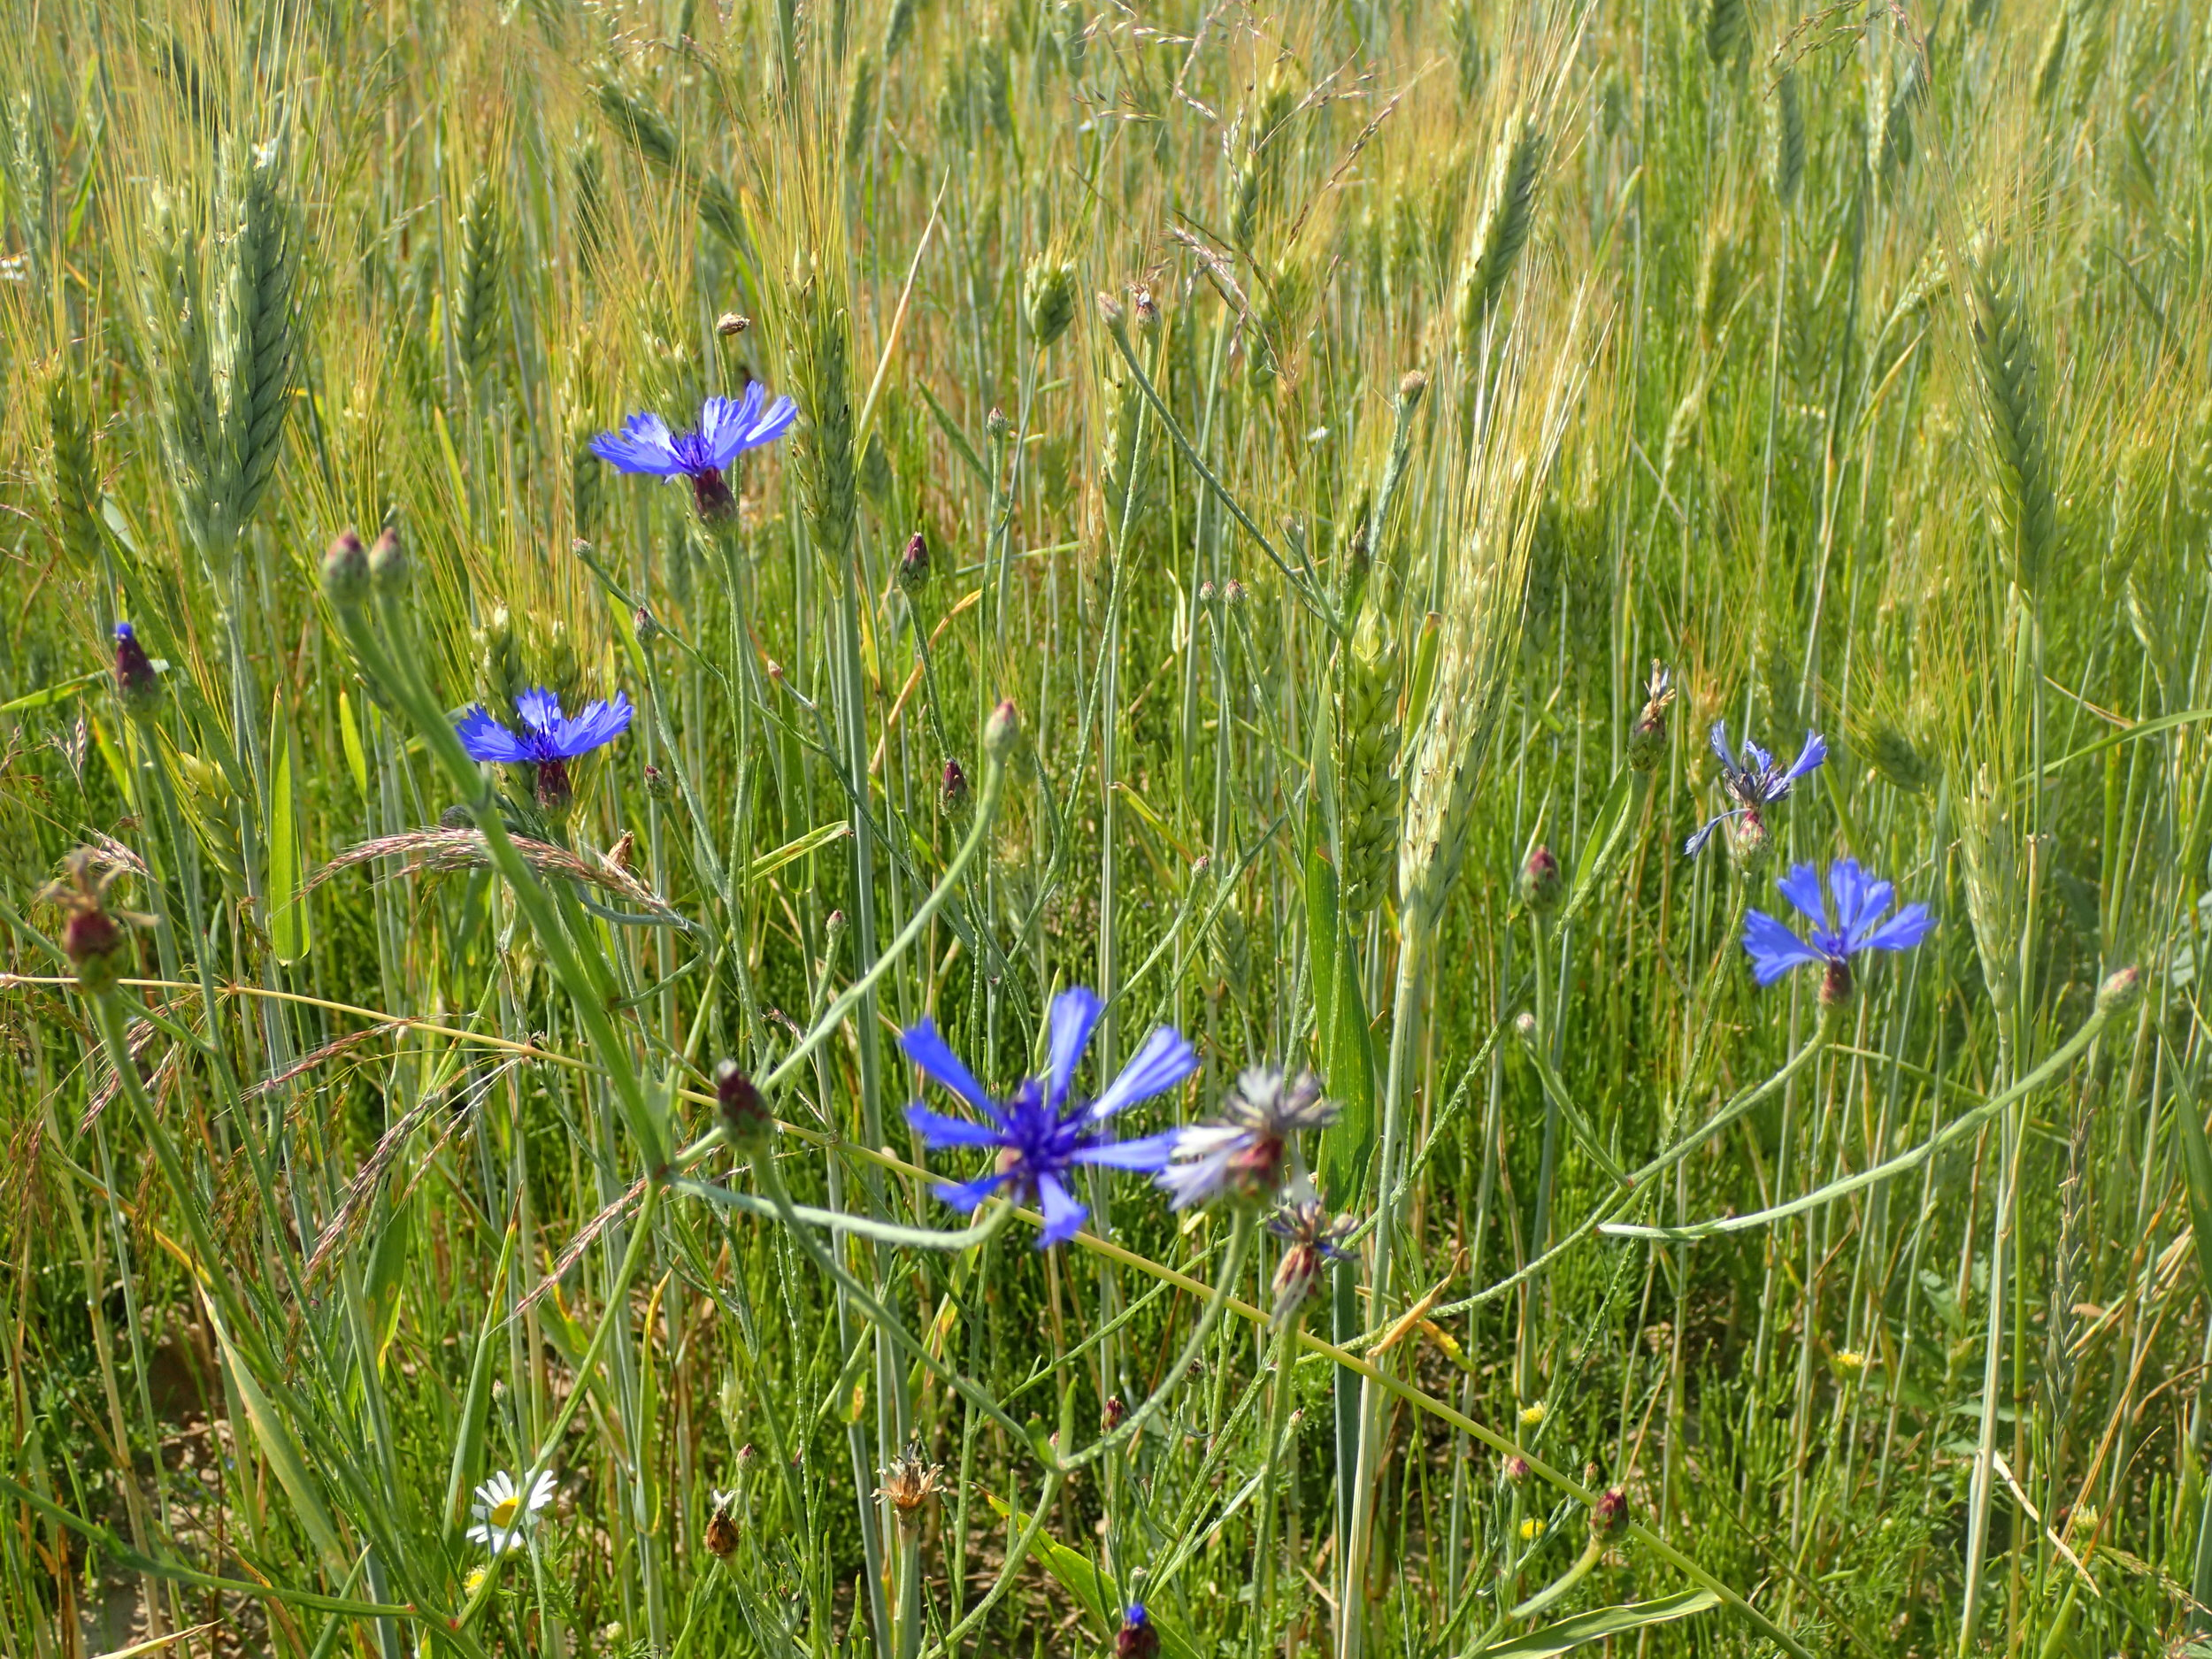 Corn flowers in the field